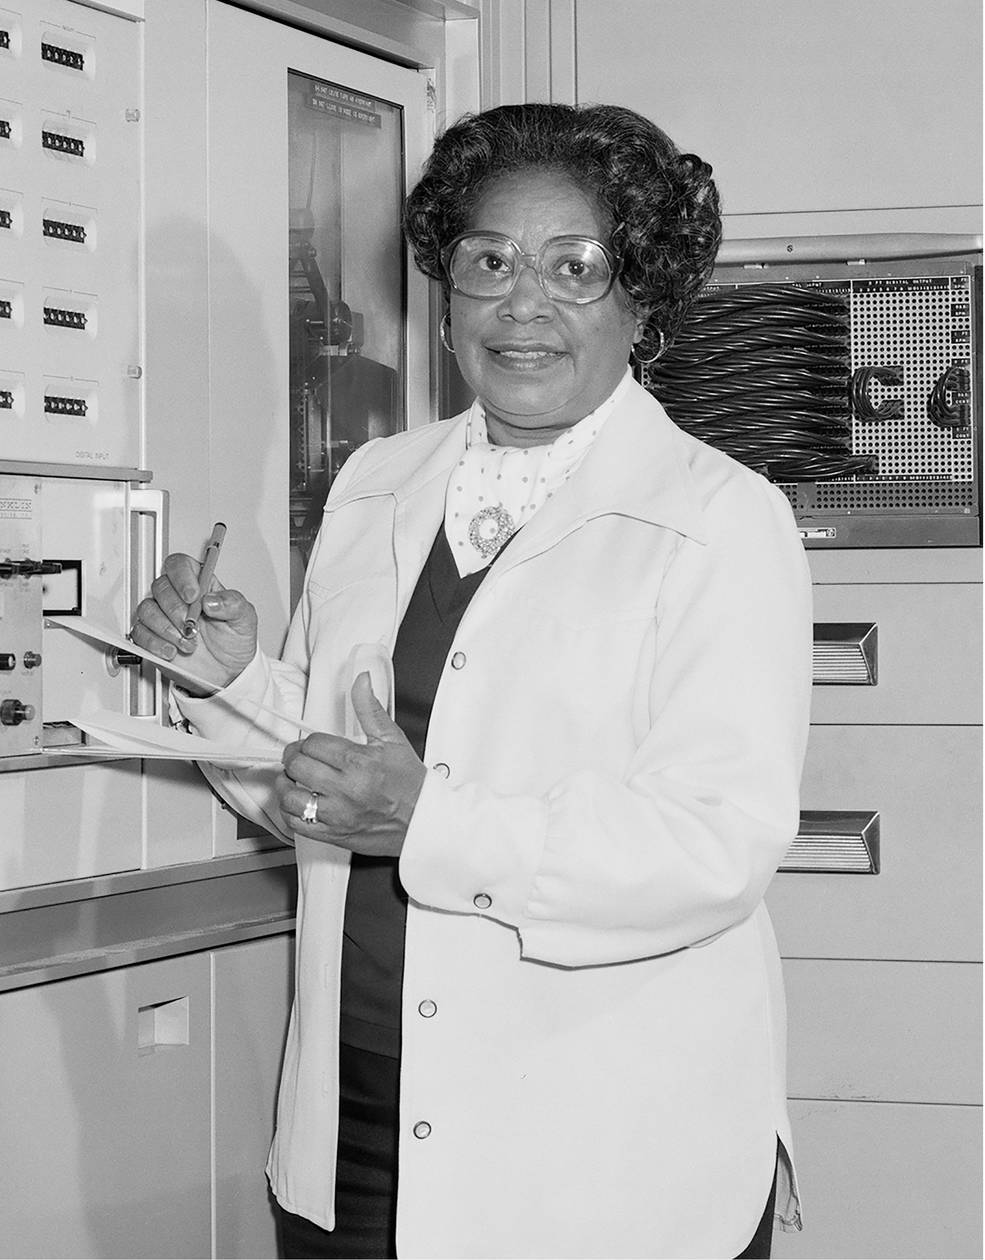 Mary Winston Jackson (1921–2005) successfully overcame the barriers of segregation and gender bias to become a professional aerospace engineer and leader in ensuring equal opportunities for future generations. Credits: NASA